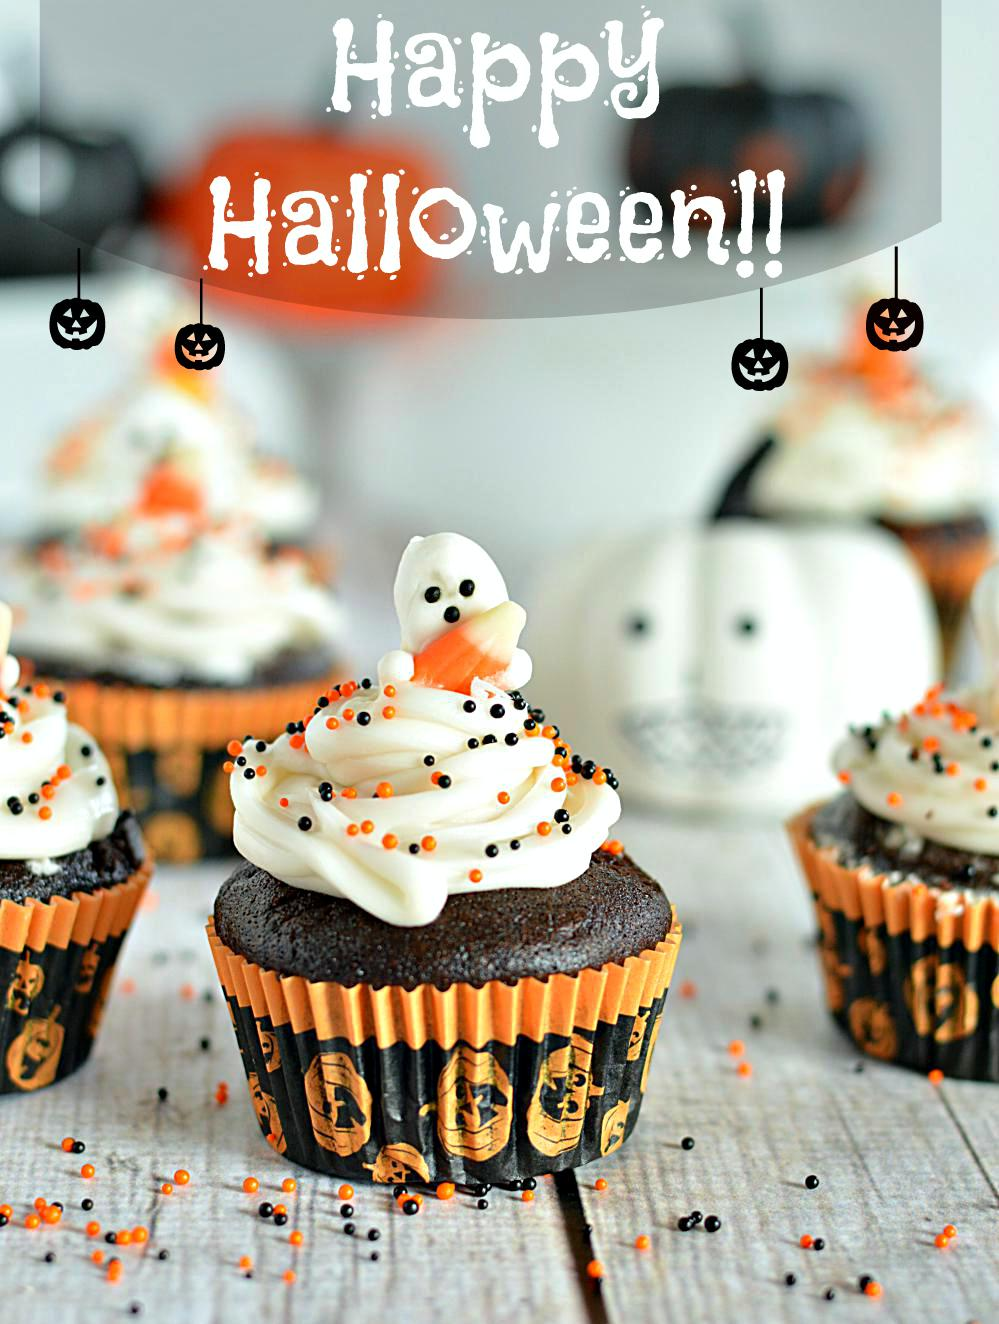 Super Moist Eggless Chocolate Cupcakes. These Halloween Chocolate Cupcakes are simply to die for! So Chocolate-y, delicious and super moist. Vegan, dairy-free and butter-free recipe!! www.ruchiskitchen.com